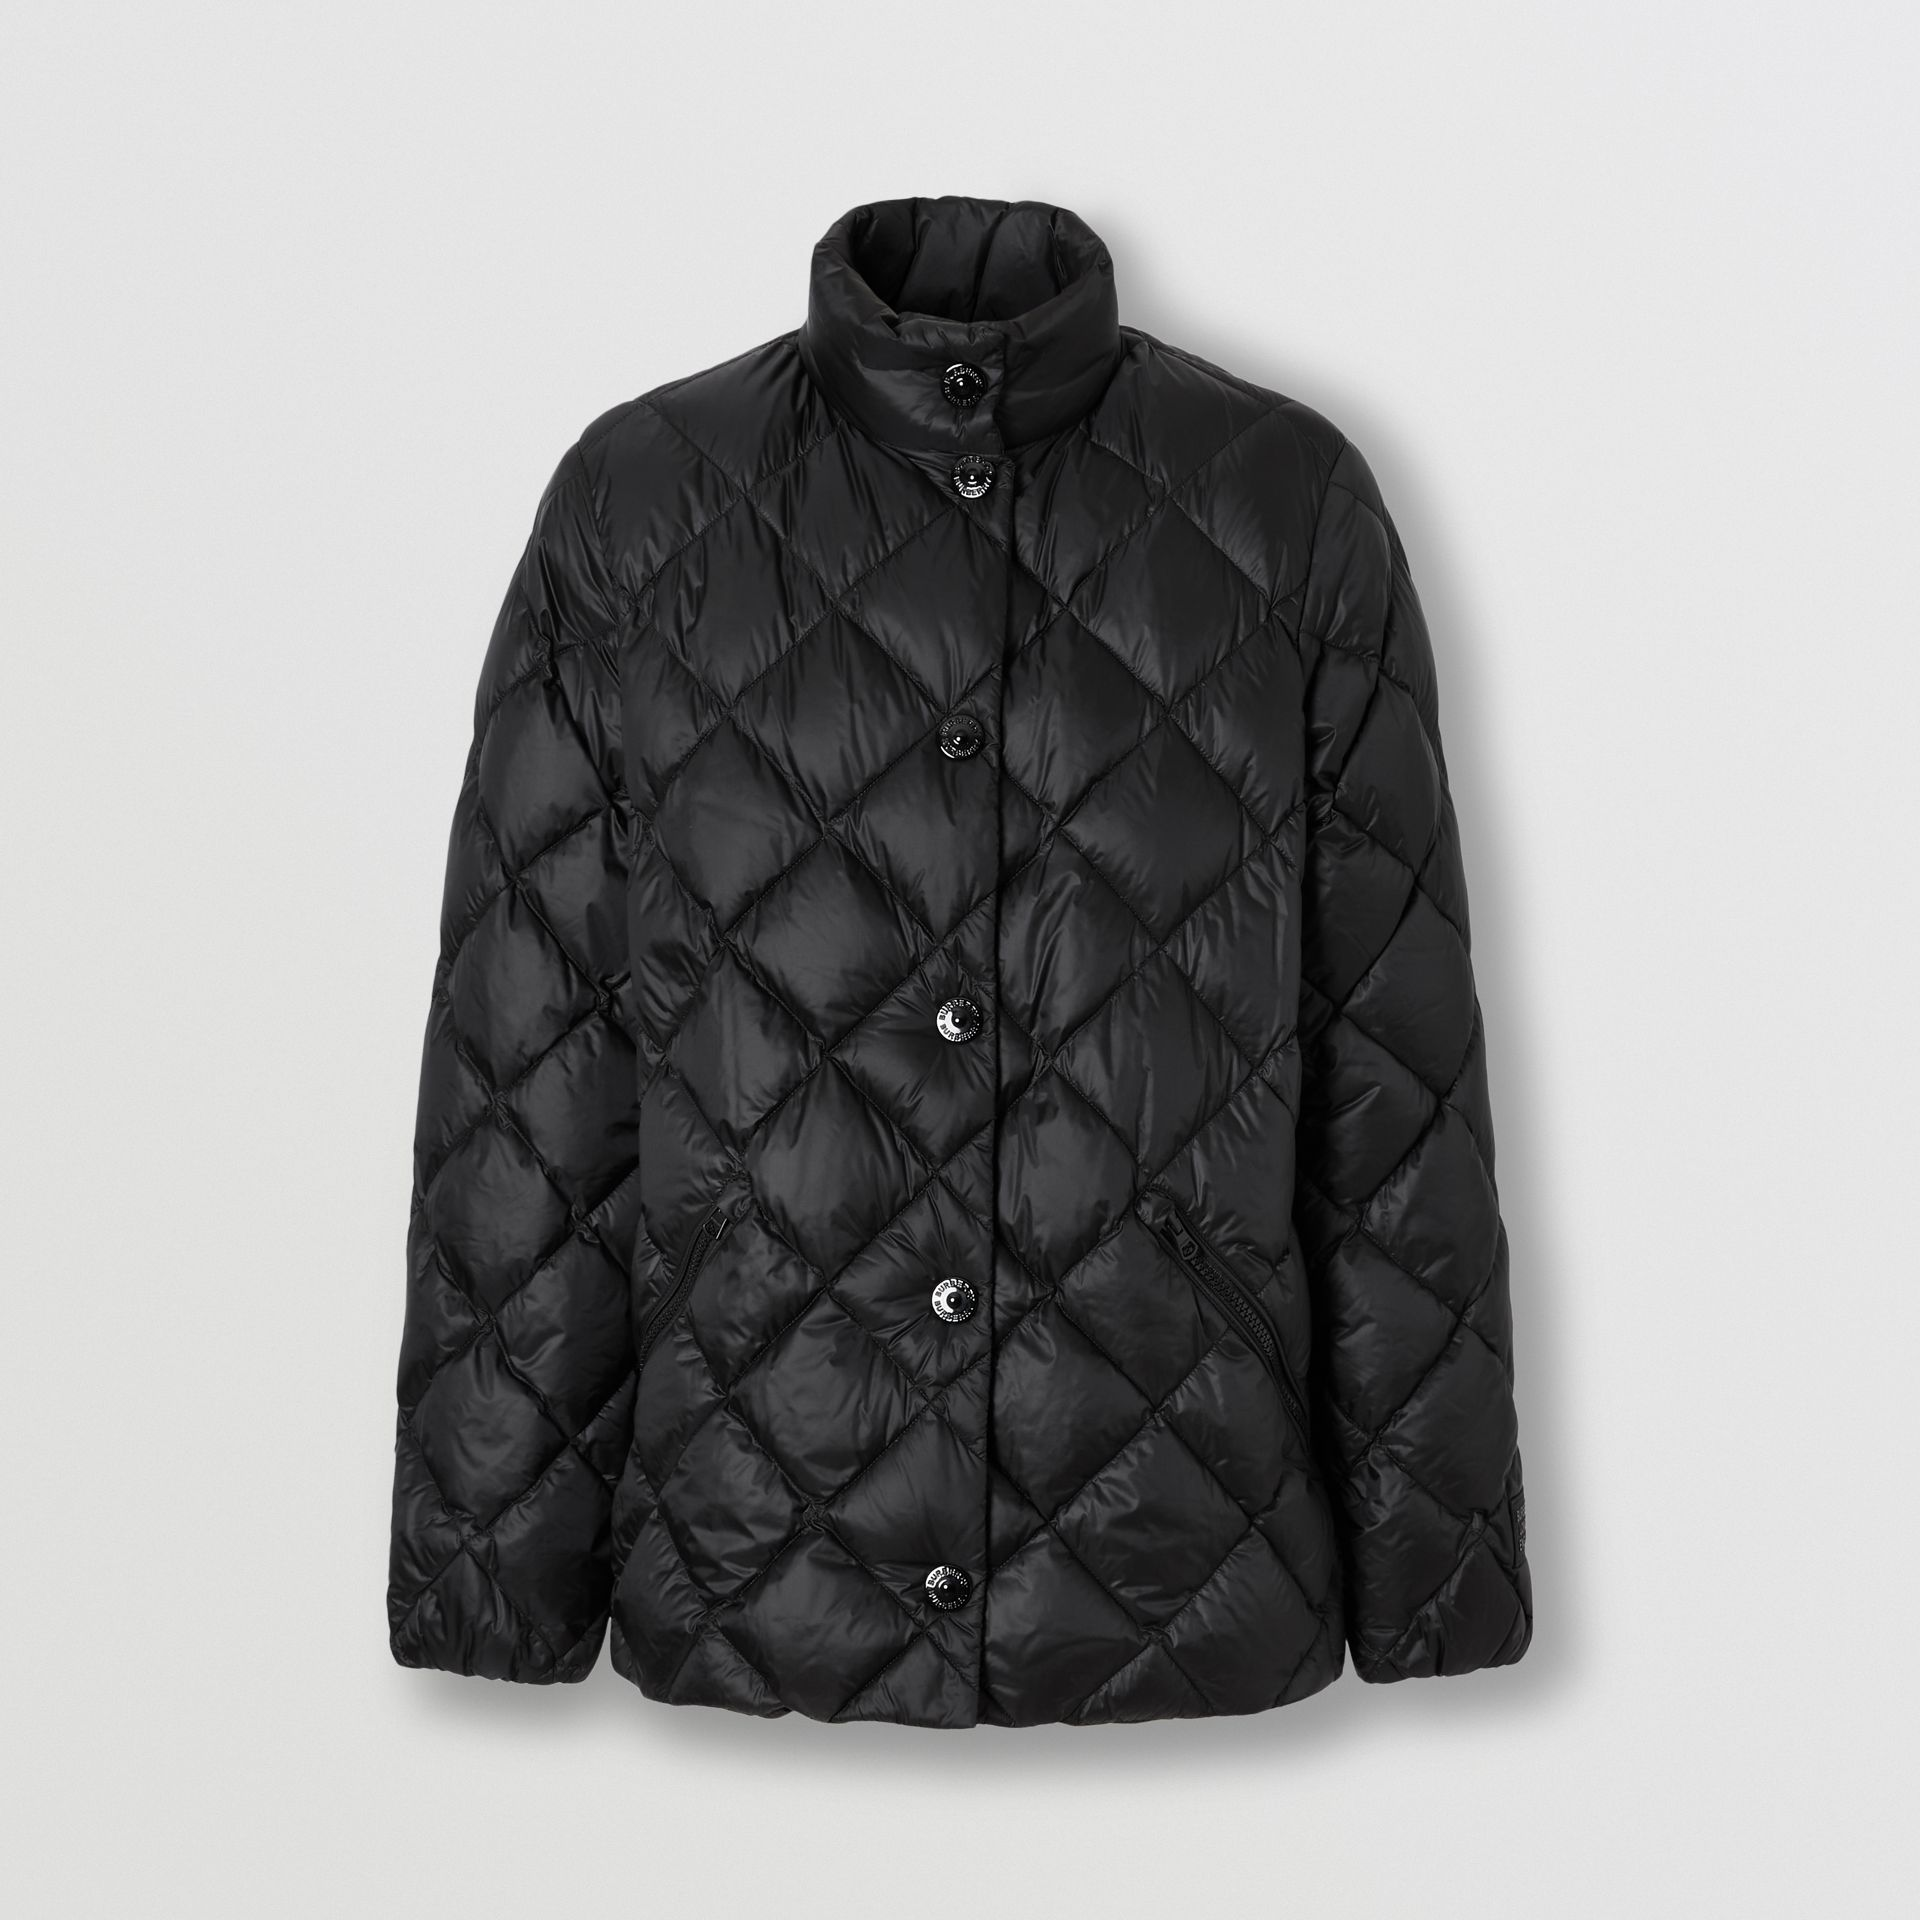 Diamond Quilted Down-filled Jacket in Black - Women | Burberry Canada - gallery image 3